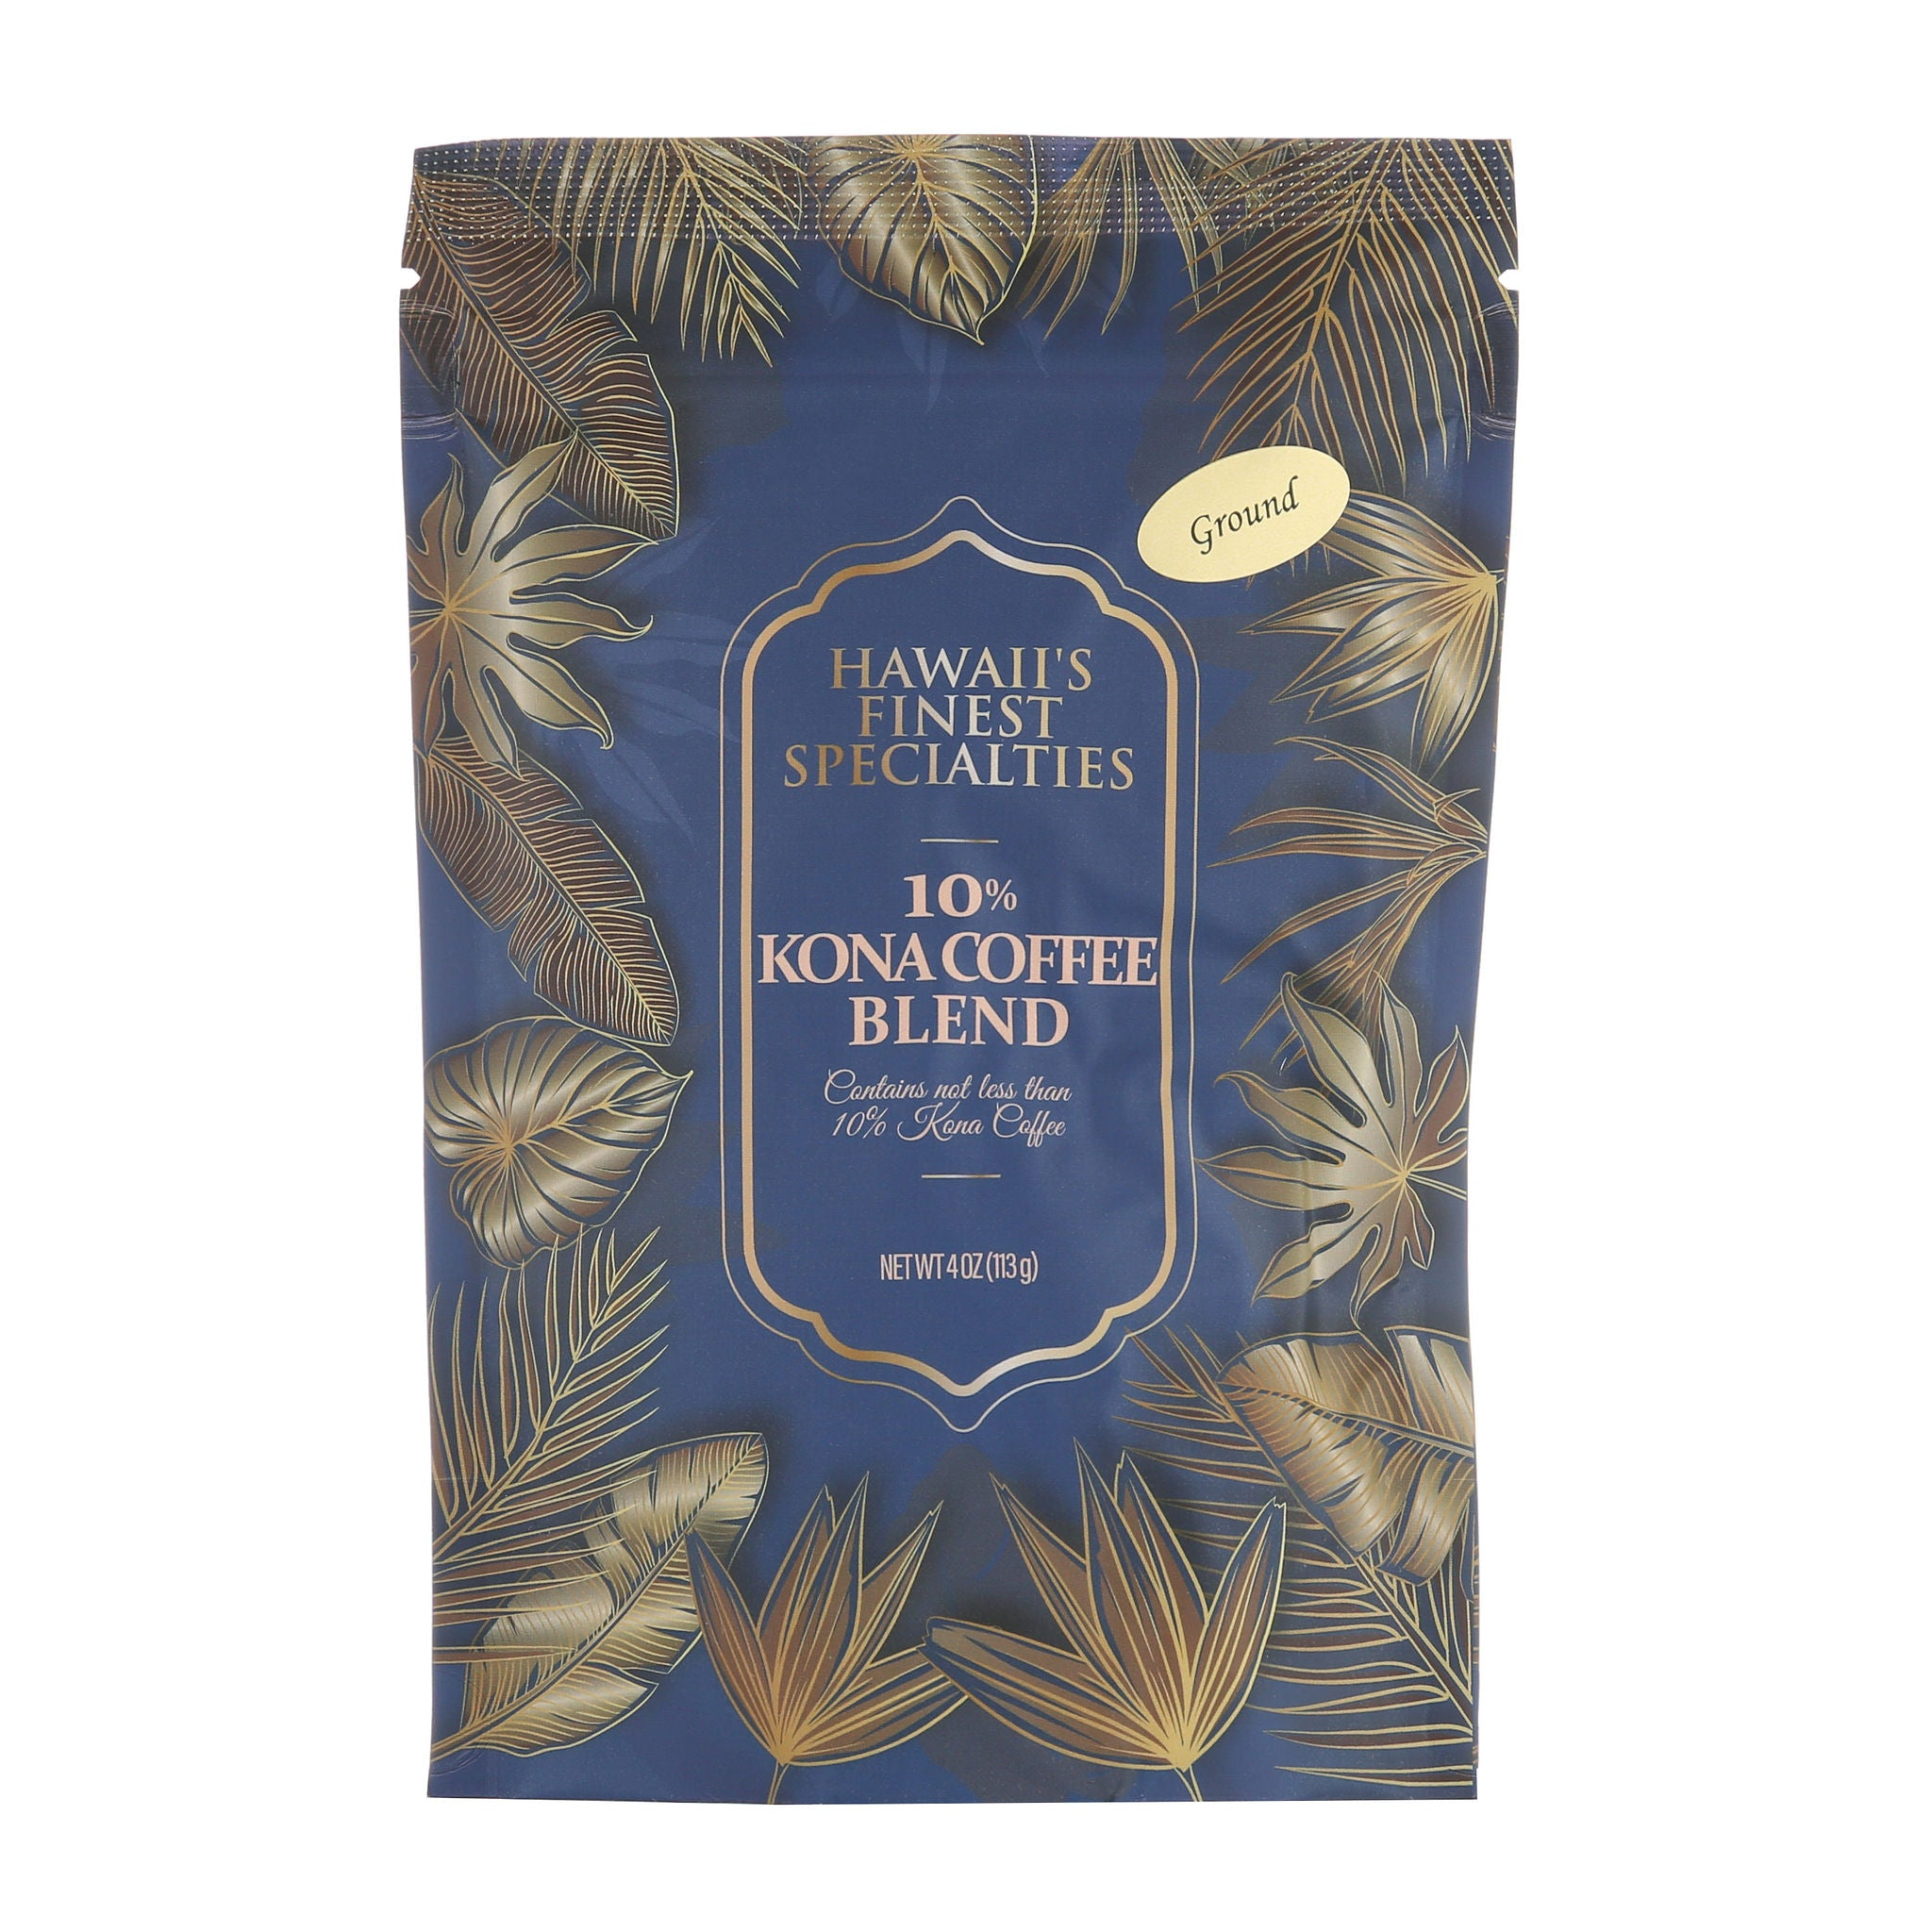 Hawaii's Finest Specialties 10% Kona Coffee